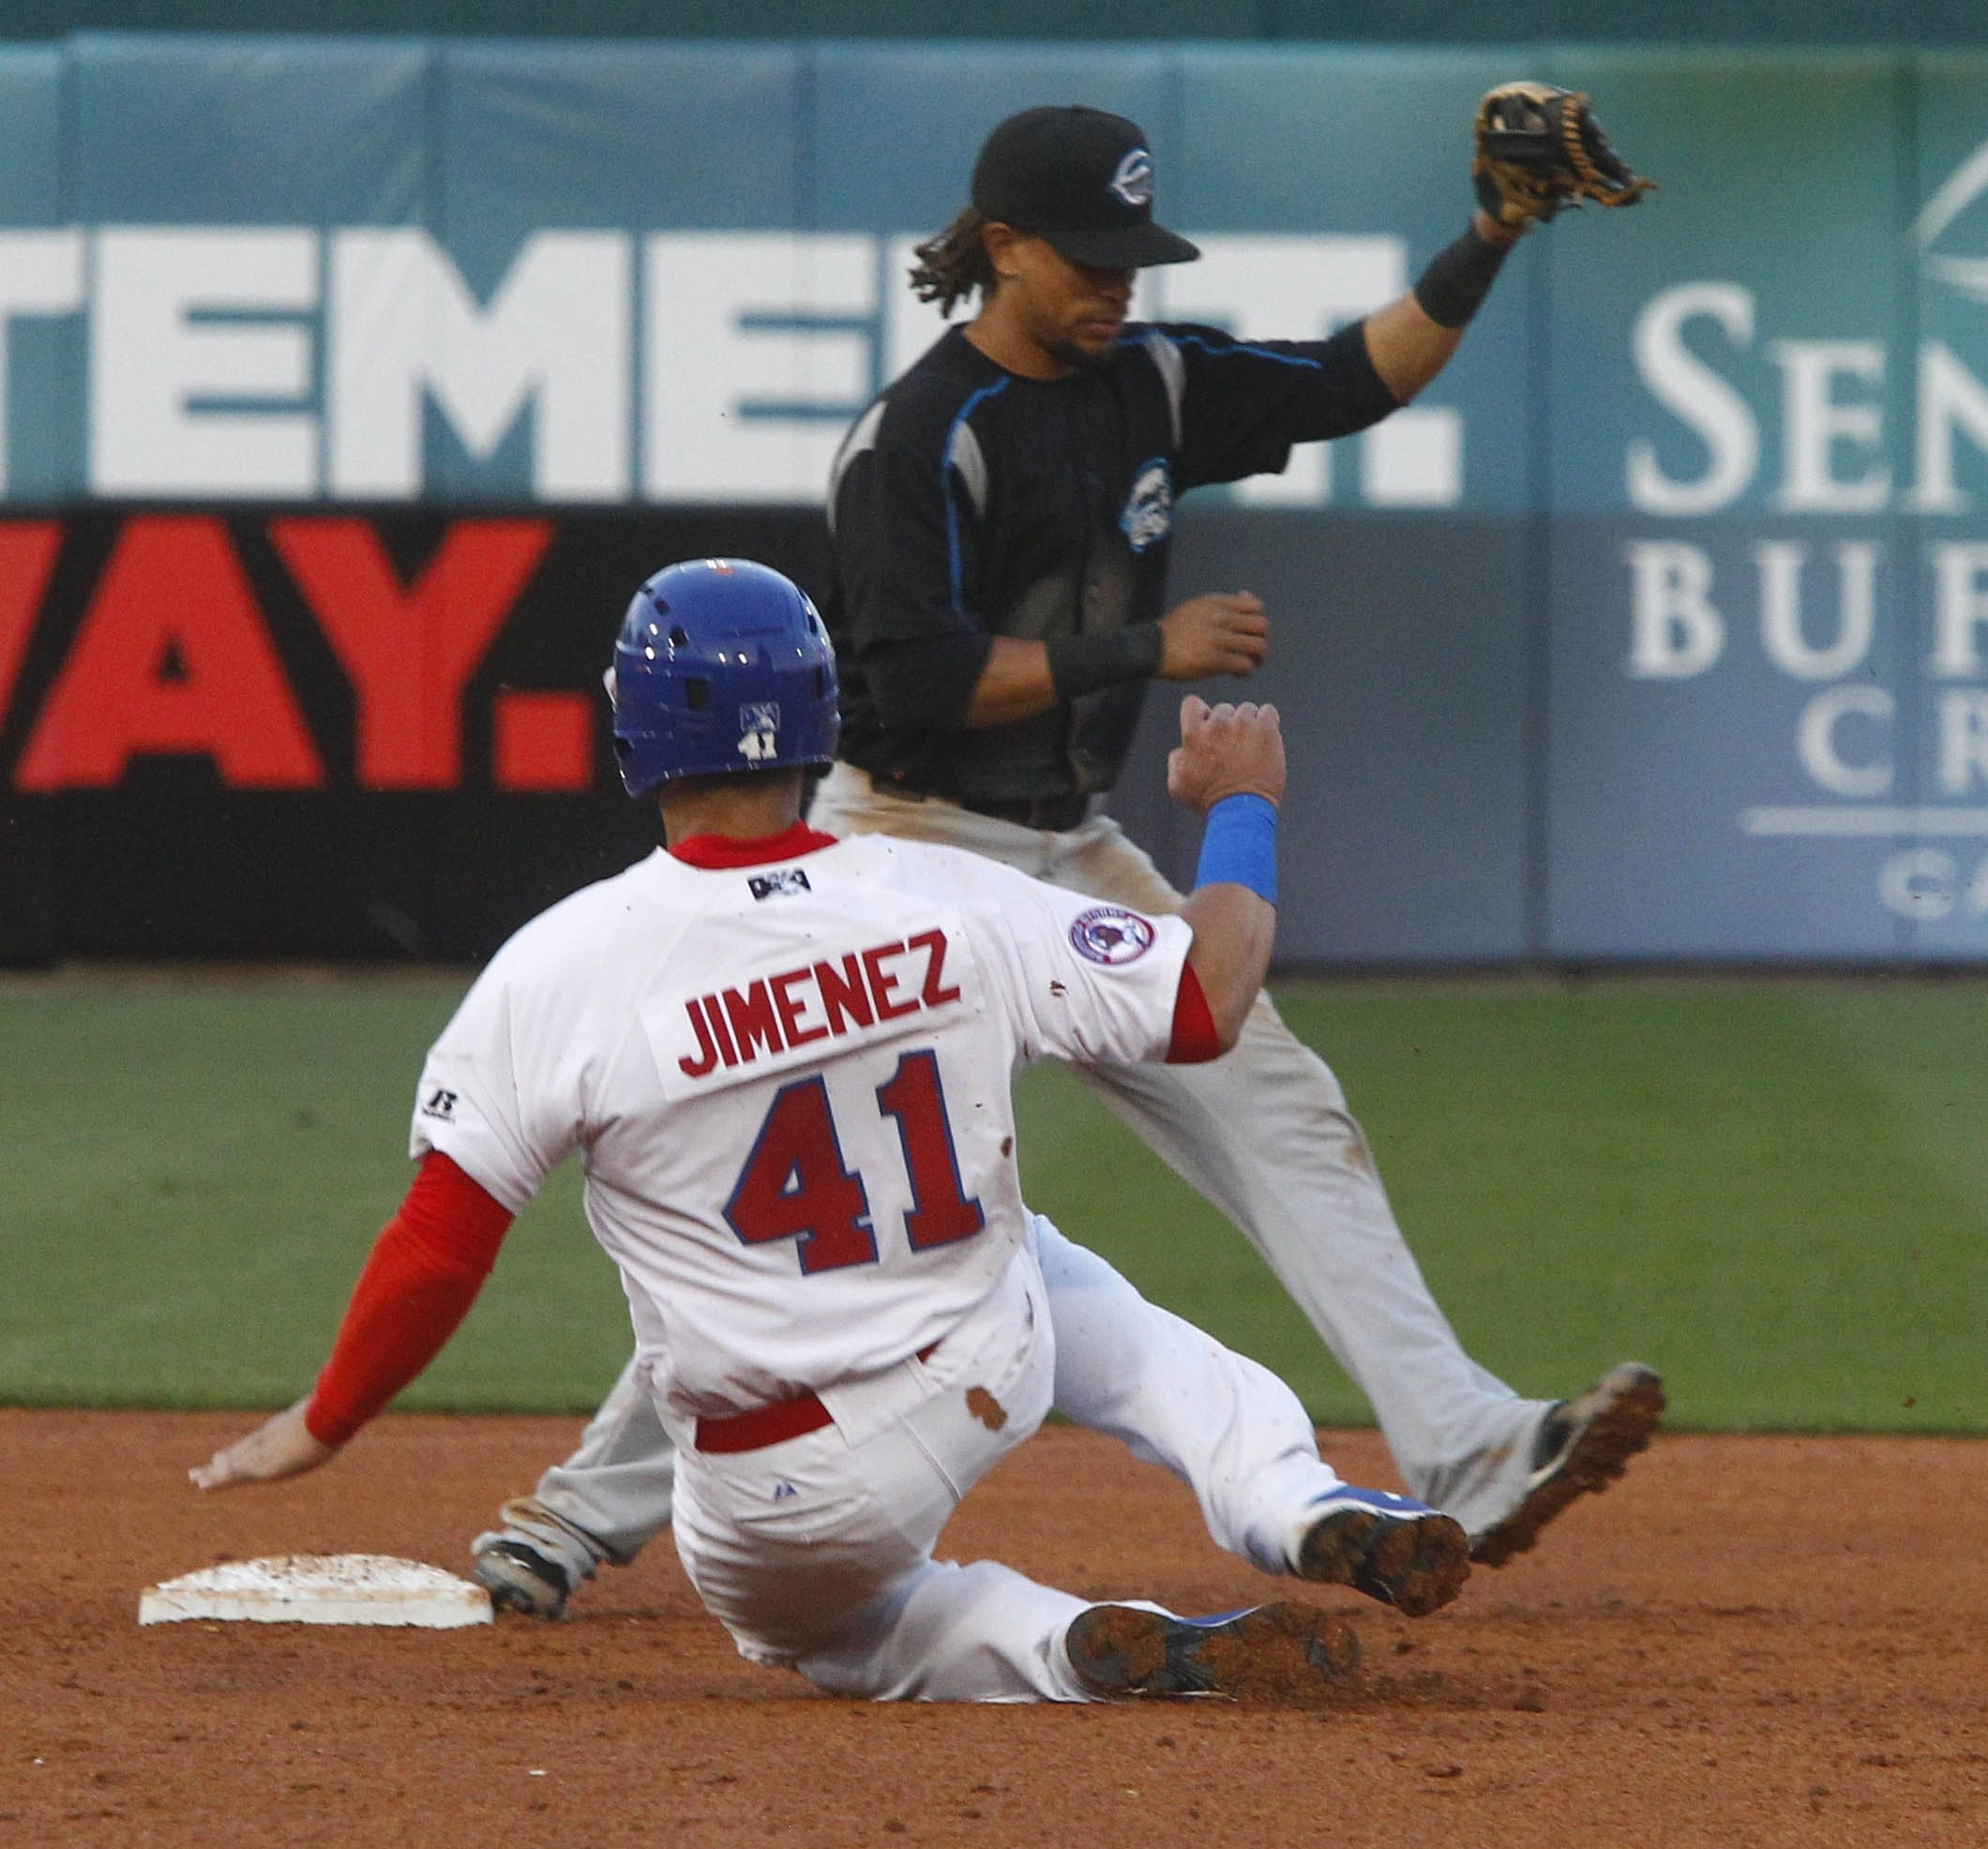 Emmanuel Burriss of Syracuse forces out Buffalo's A.J. Jimenez at second base during Friday's game at Coca-Cola Field.